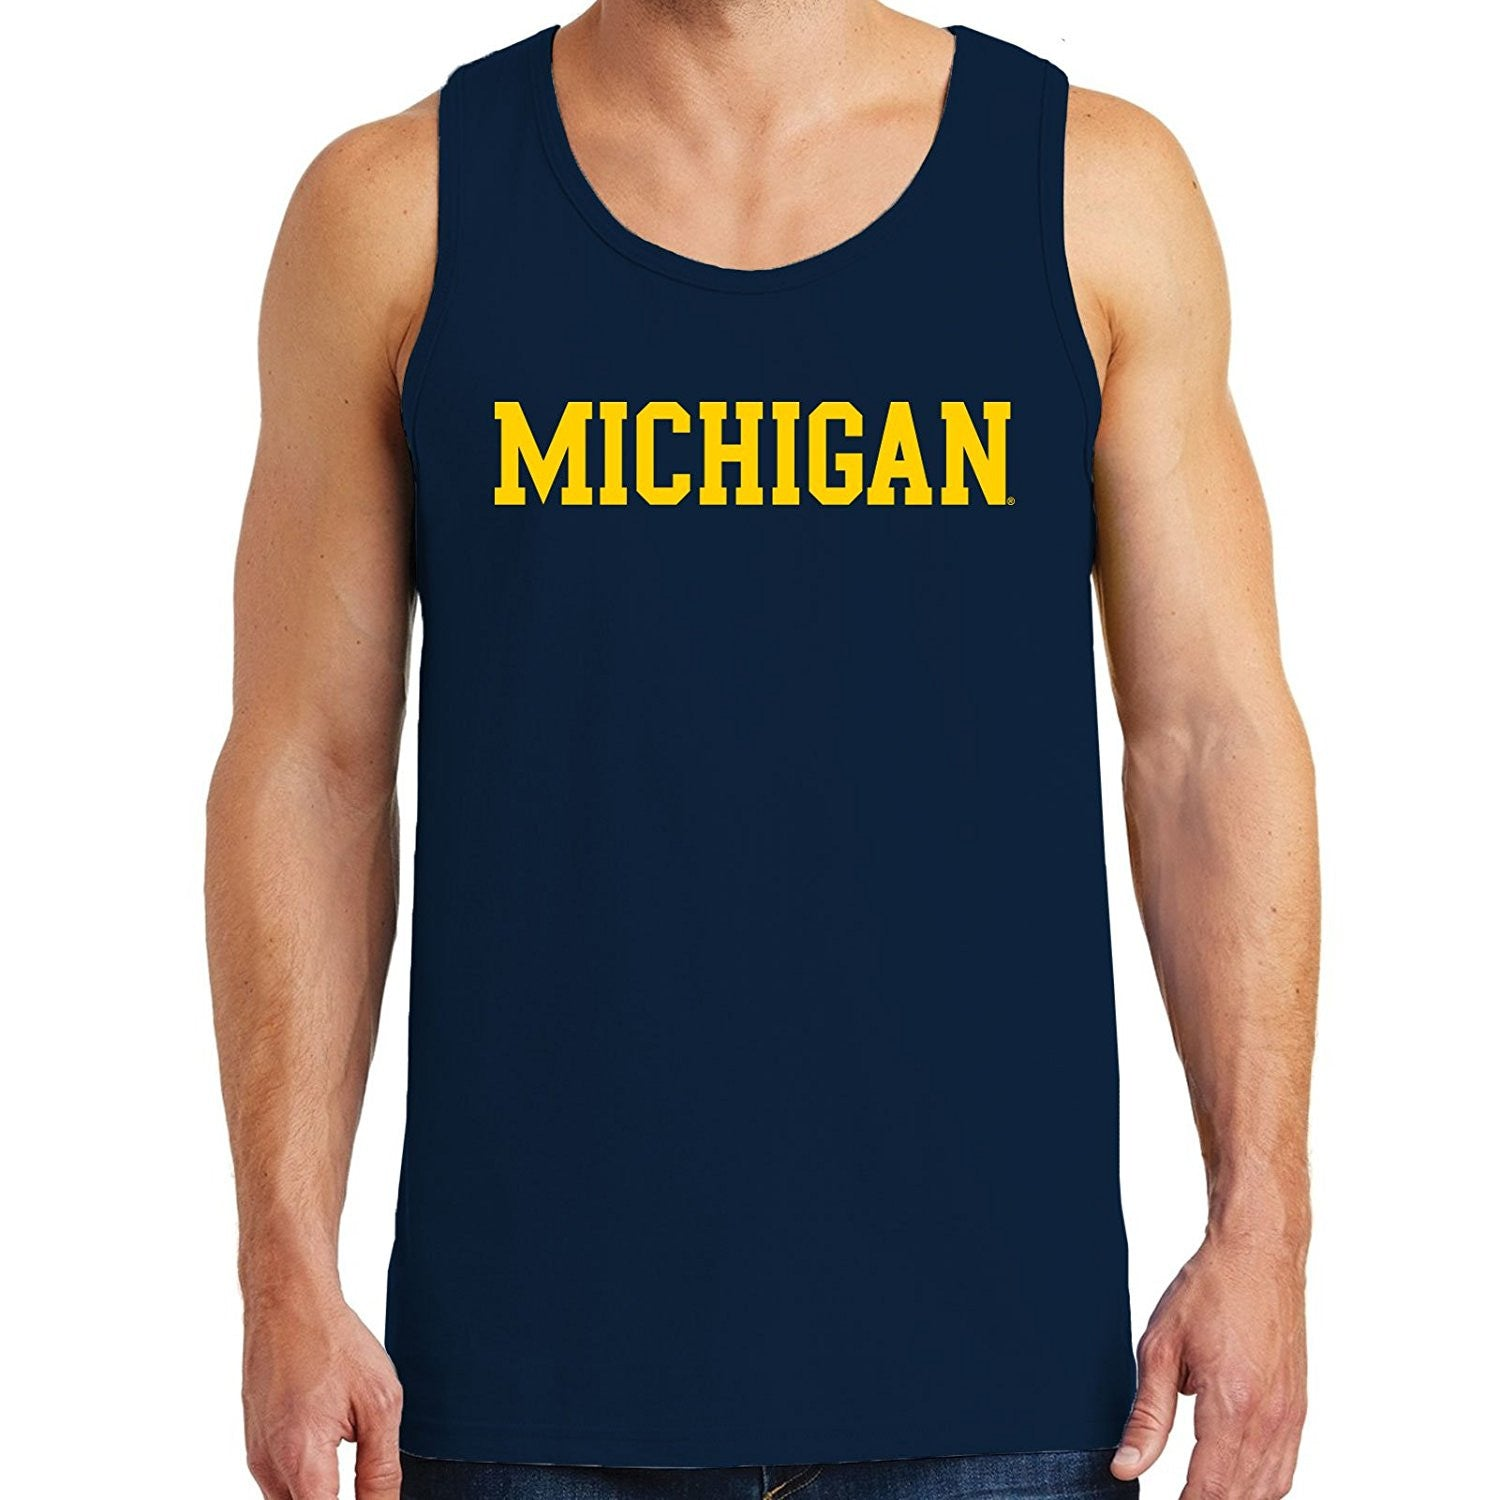 UGP Block Michigan Jersey Muscle Tank - Navy - UGP